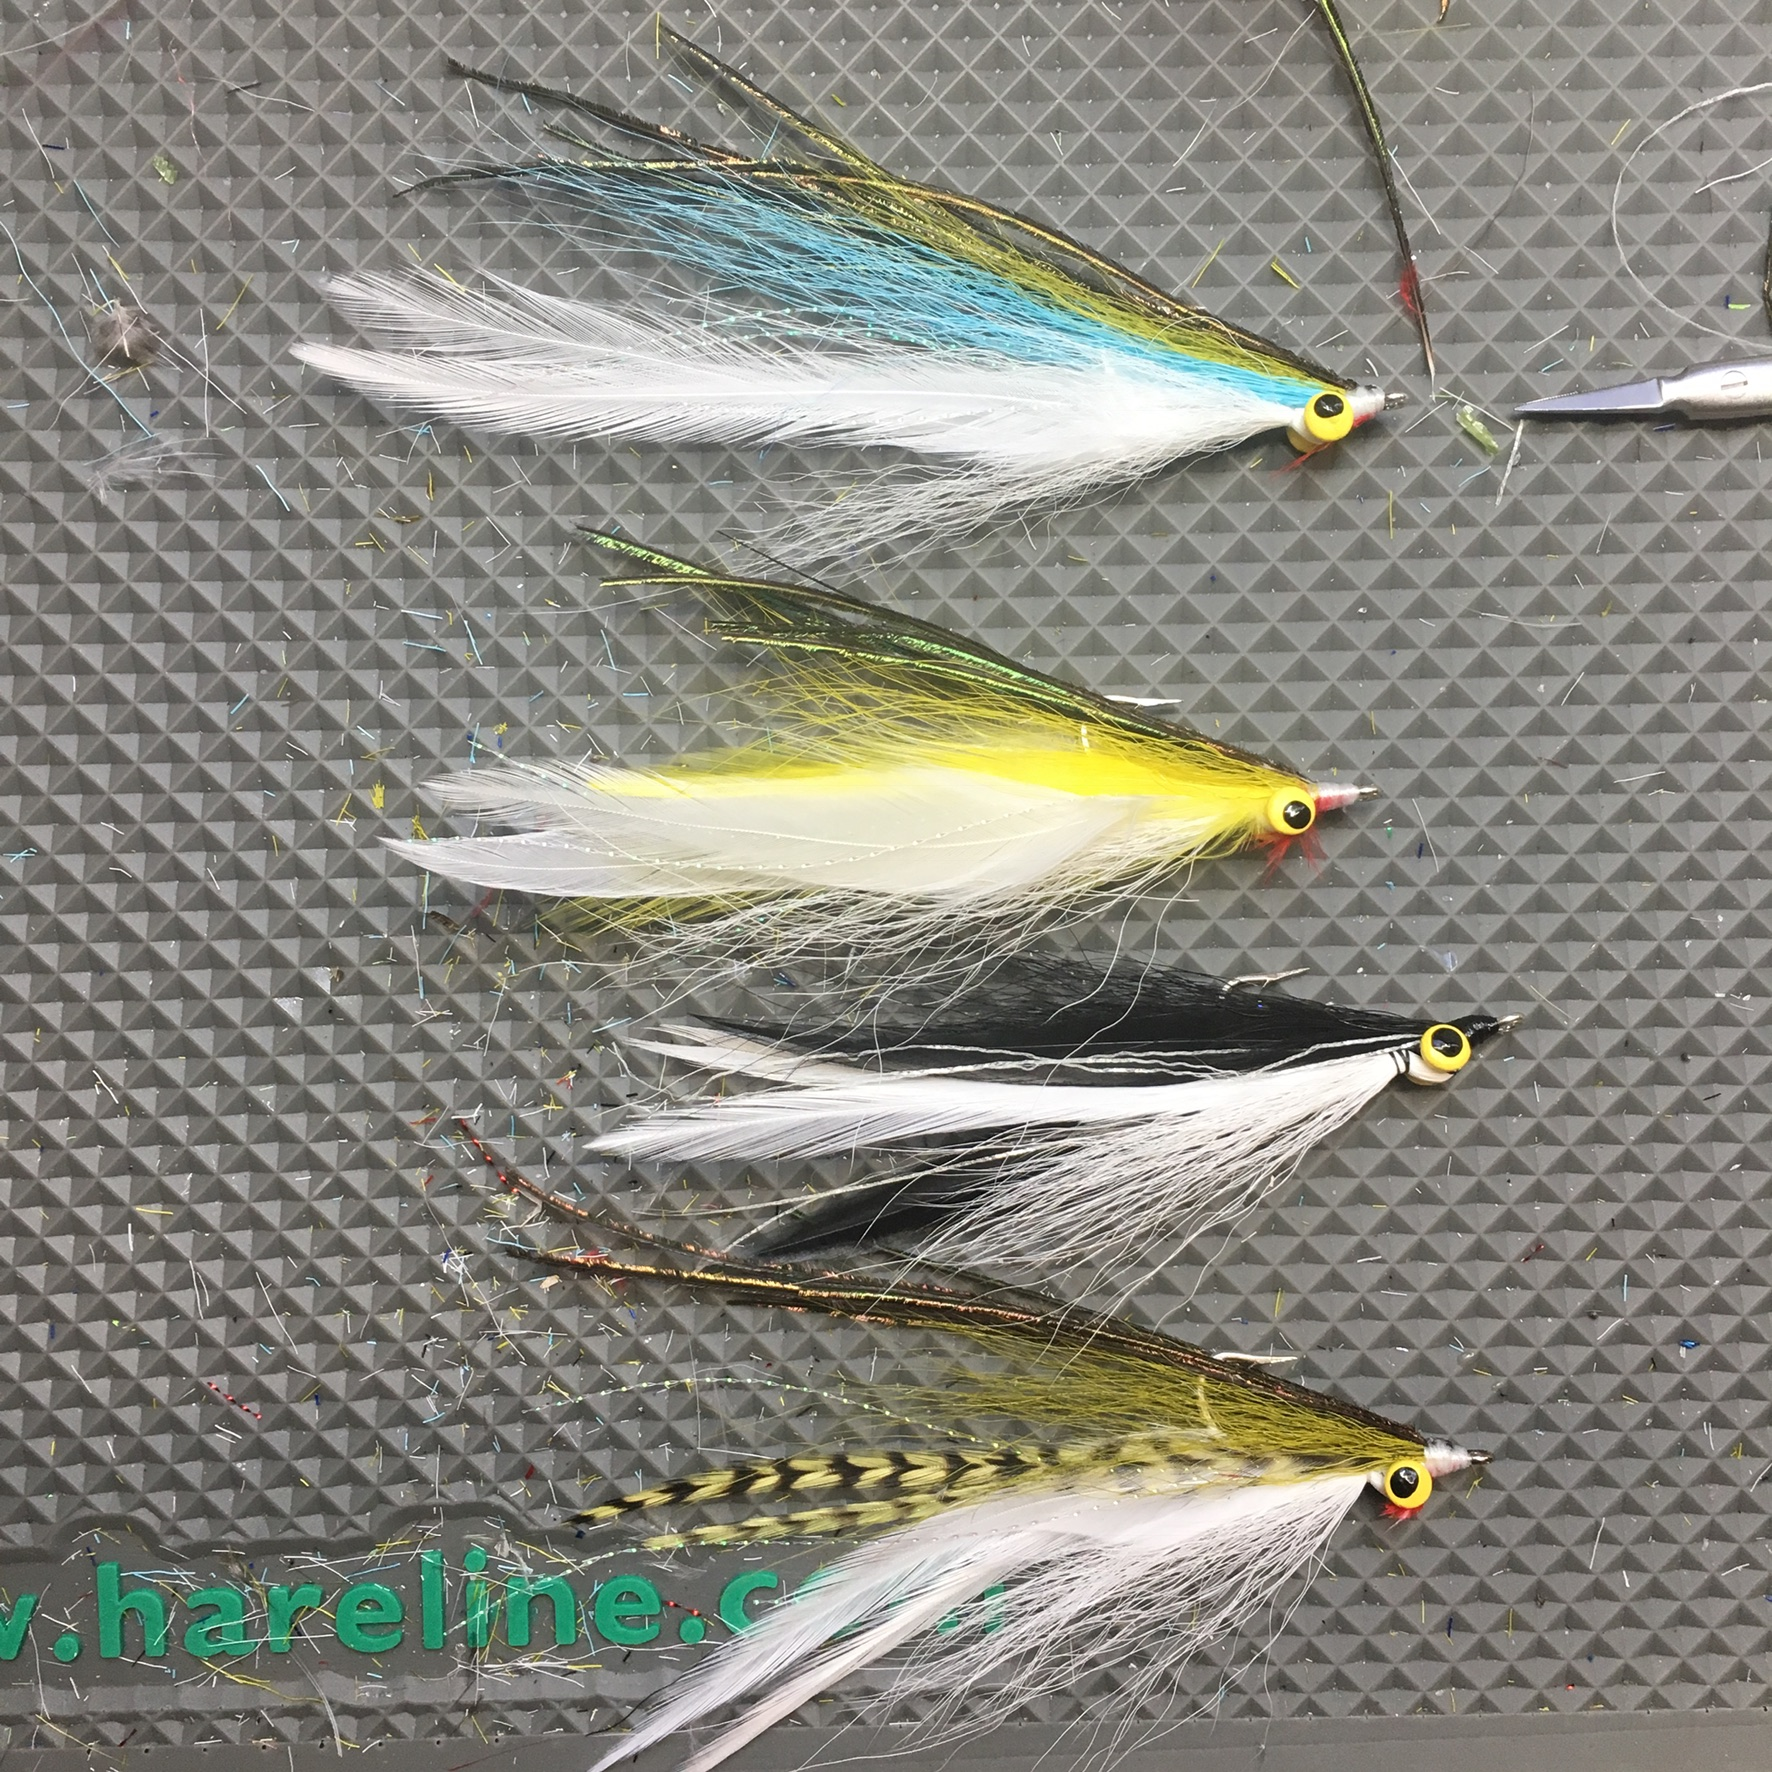 Half-and-halfs combine the action of clousers with profile of deceiversers. These are tied to imitate a variety of bait fish including herring, pollock, mackerel, and a genereic black and white for low light conditions/